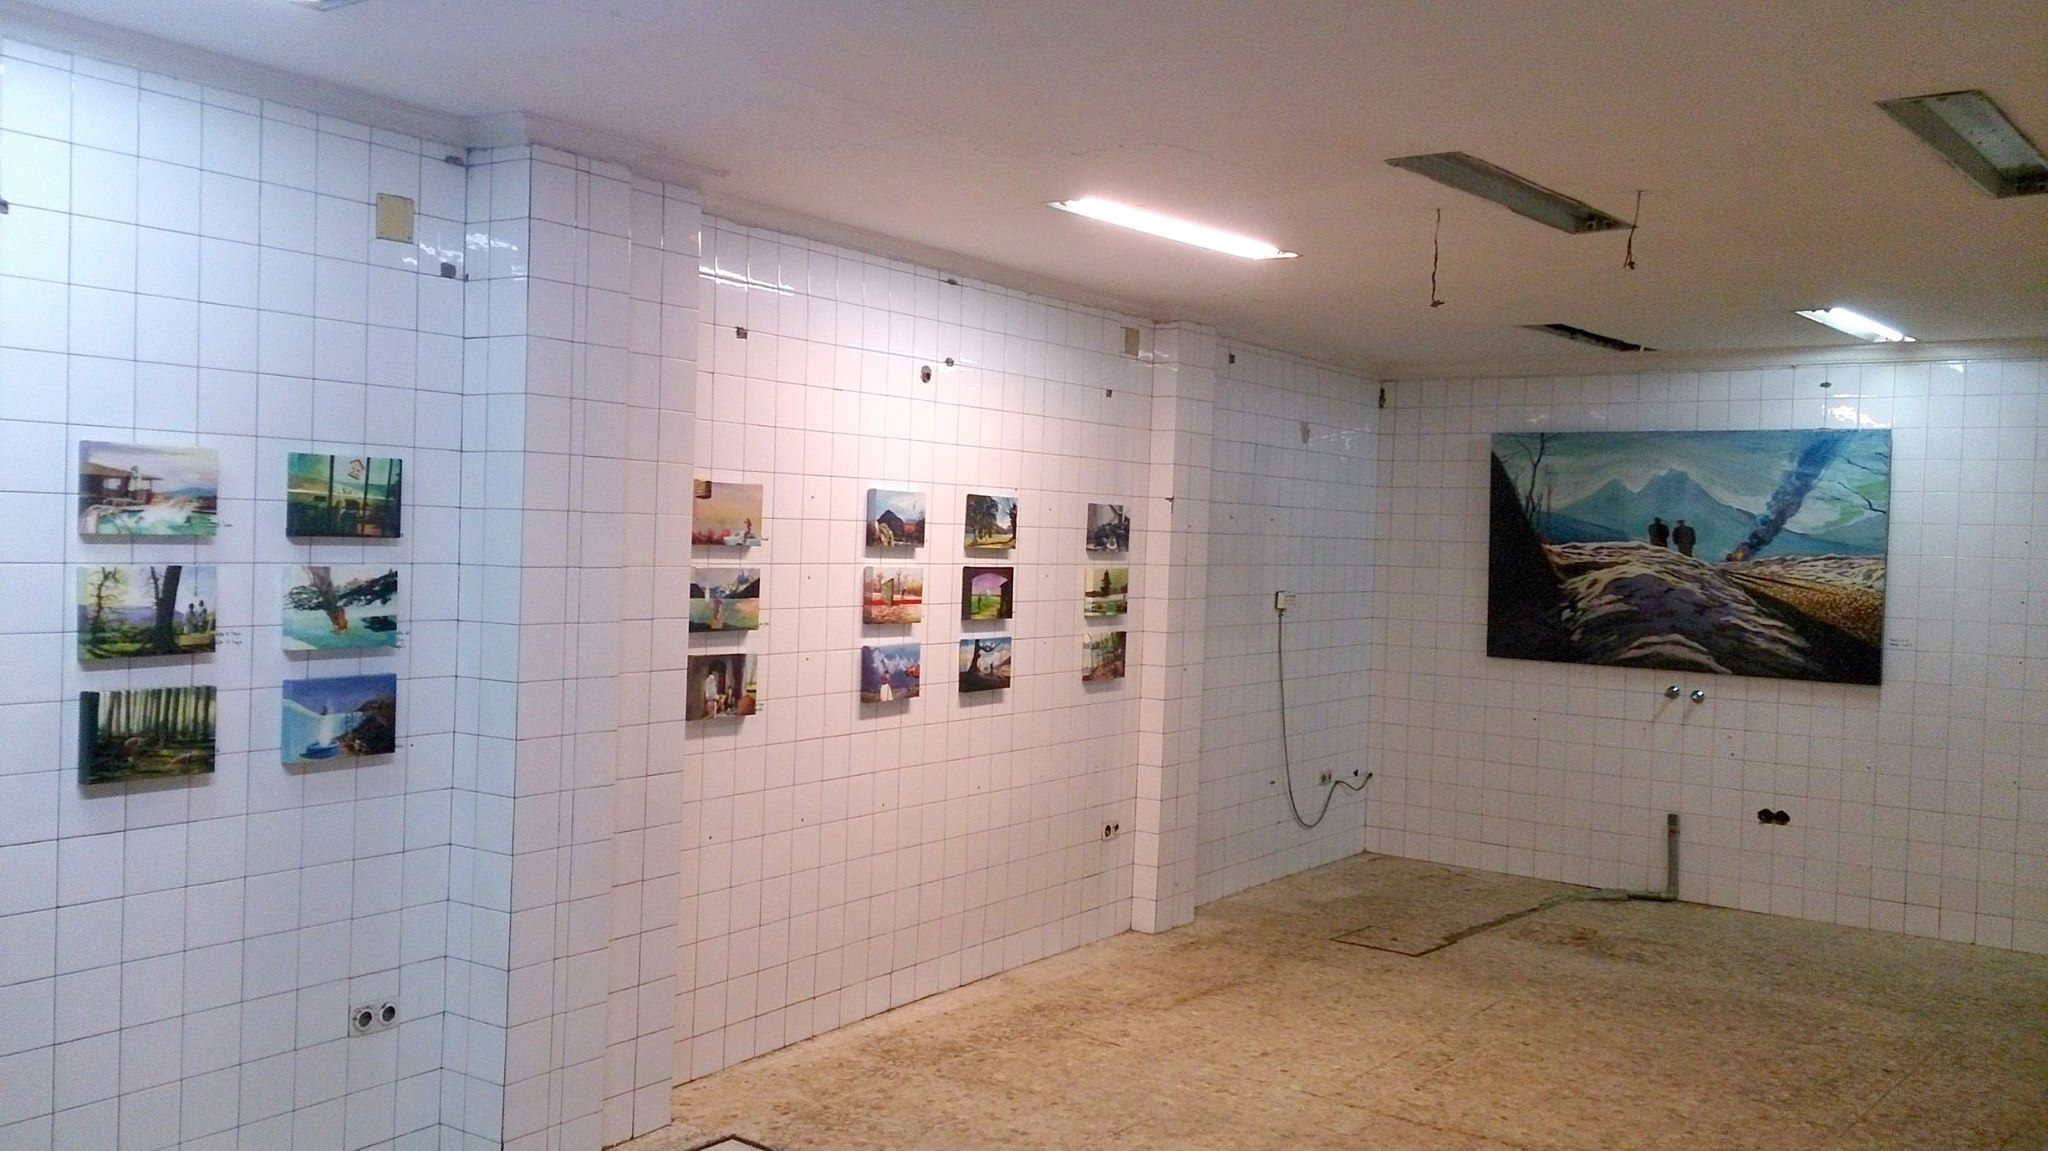 Pop Up Gallery. Seville, 2013. Commissioned by Elena Caranca and Isabel Ignacio.